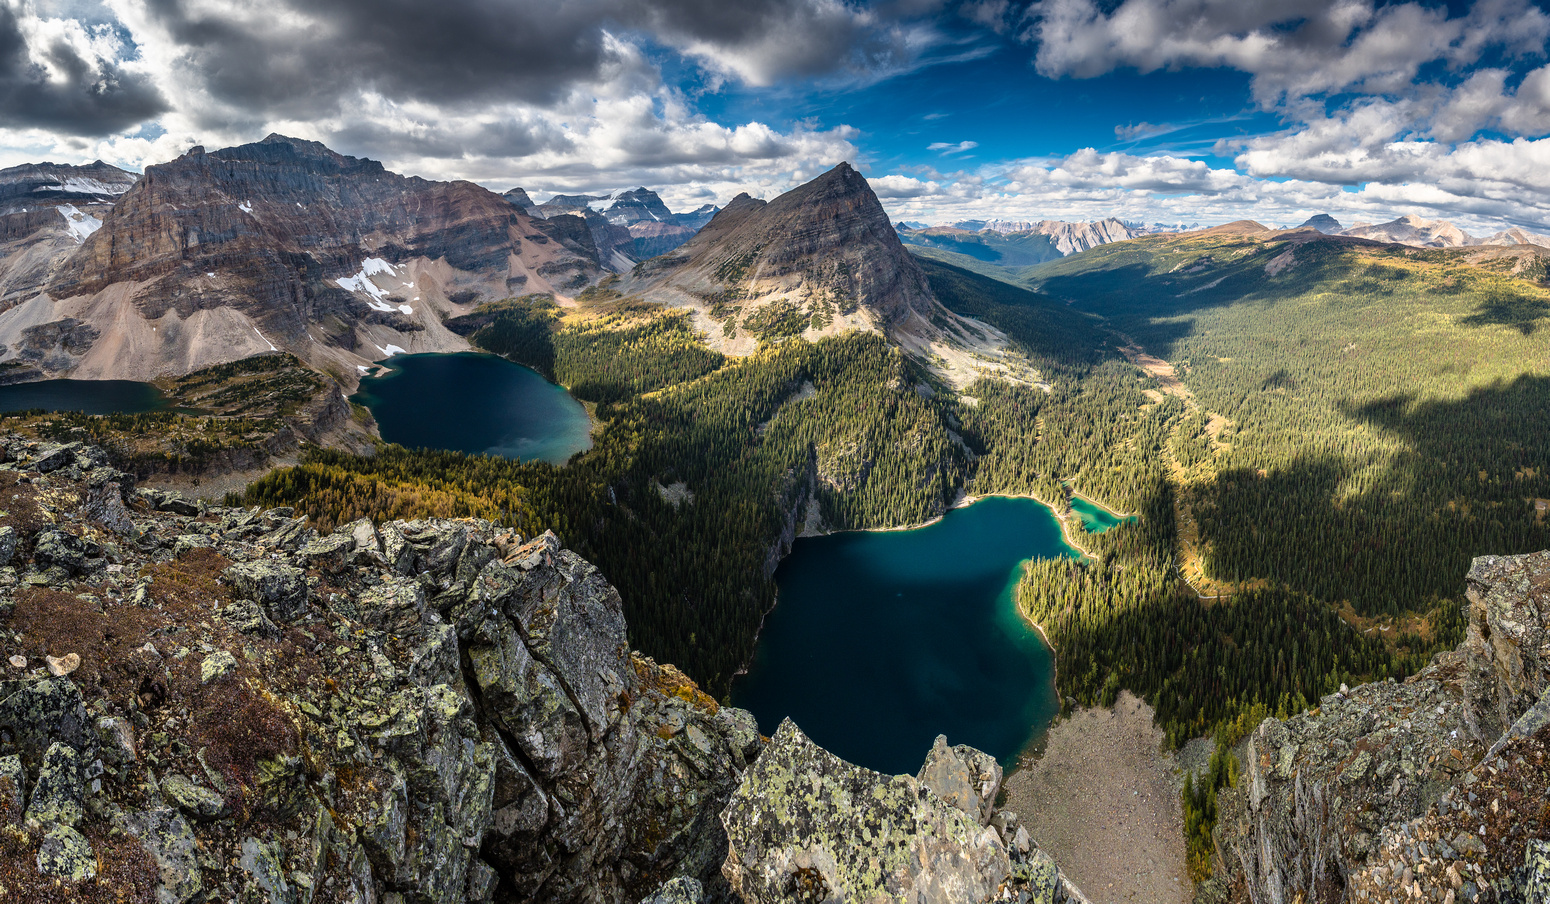 An interesting angle from the top of Sugarloaf's north face looking down at Egypt Lake with Scarab Lake at left and even part of Mummy Lake at far left.